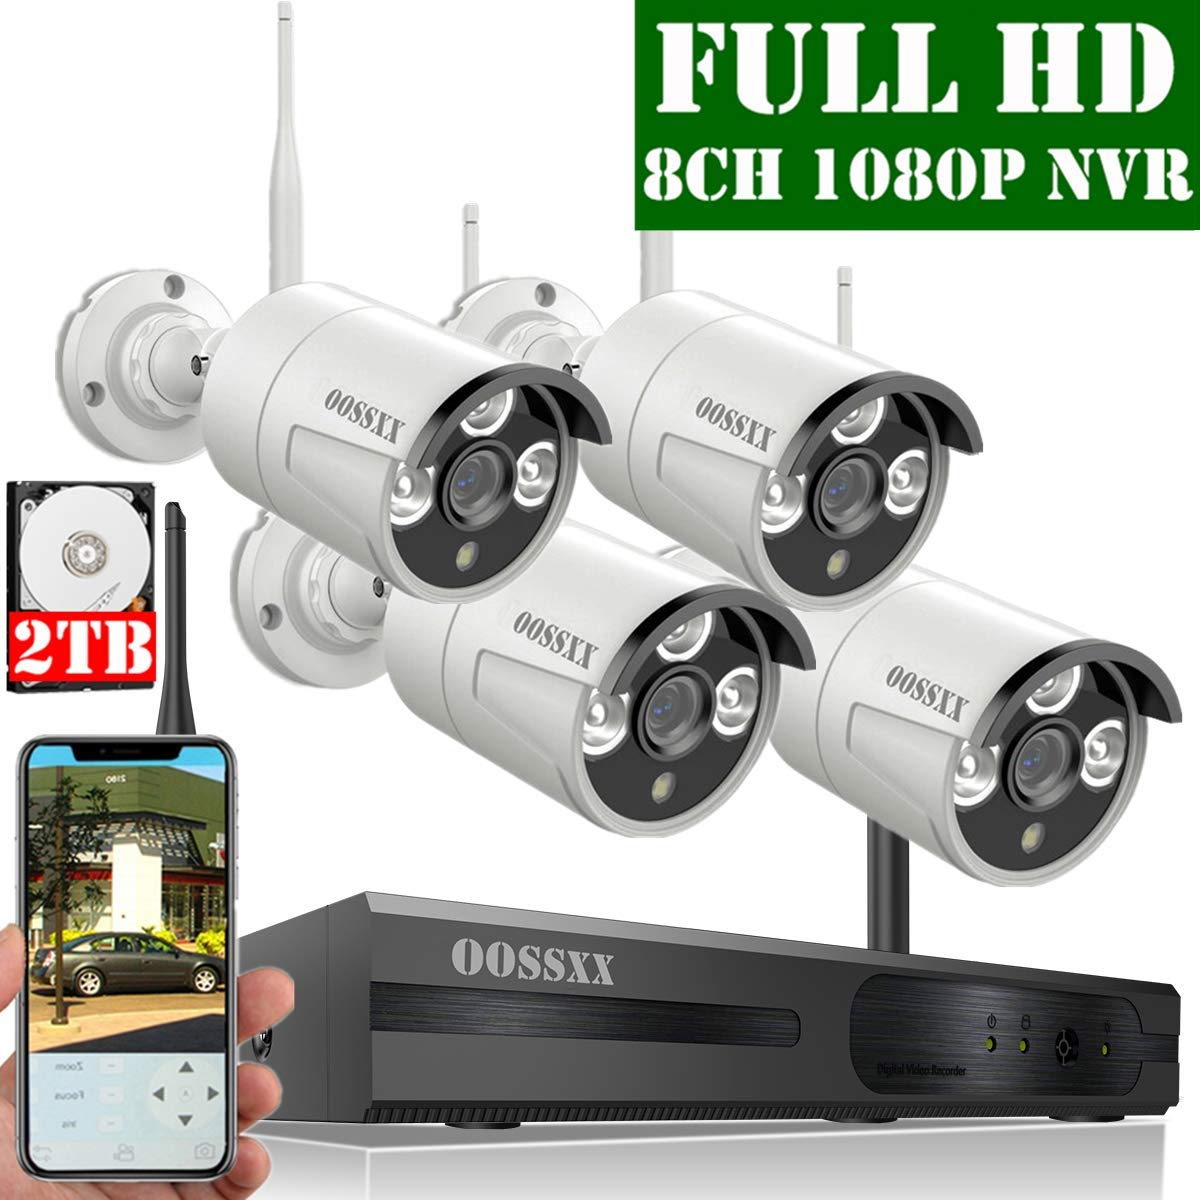 【2019 Update】 OOSSXX 8-Channel HD 1080P Wireless Security Camera System,4Pcs 1080P 2.0 Megapixel Wireless Indoor/Outdoor IR Bullet IP Cameras,P2P,App, HDMI Cord & 2TB HDD Pre-Install by OOSSXX